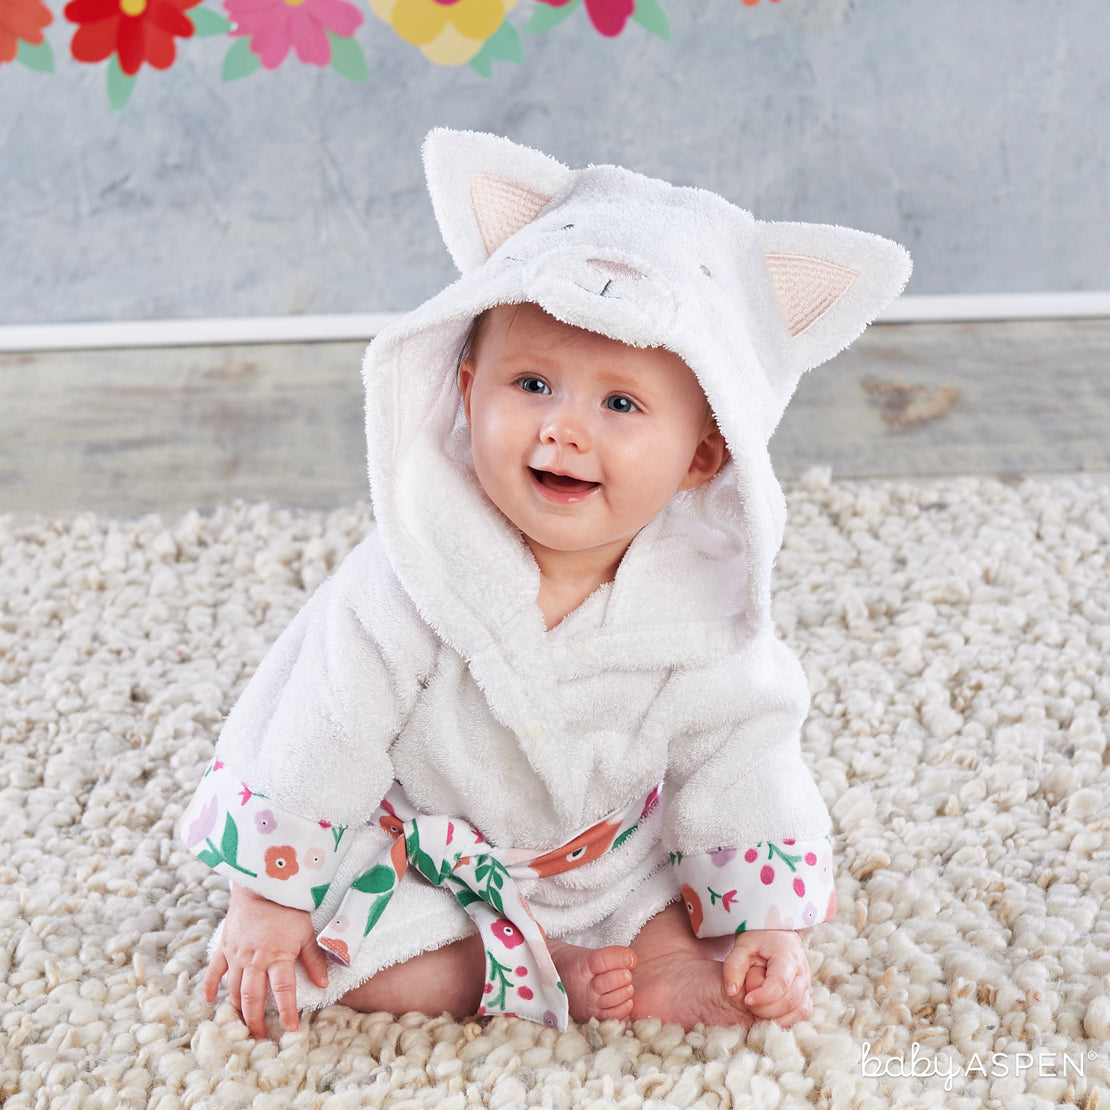 Cat Hooded Robe | Purrrfectly Adorable Gifts For Baby + A Giveaway | Baby Aspen